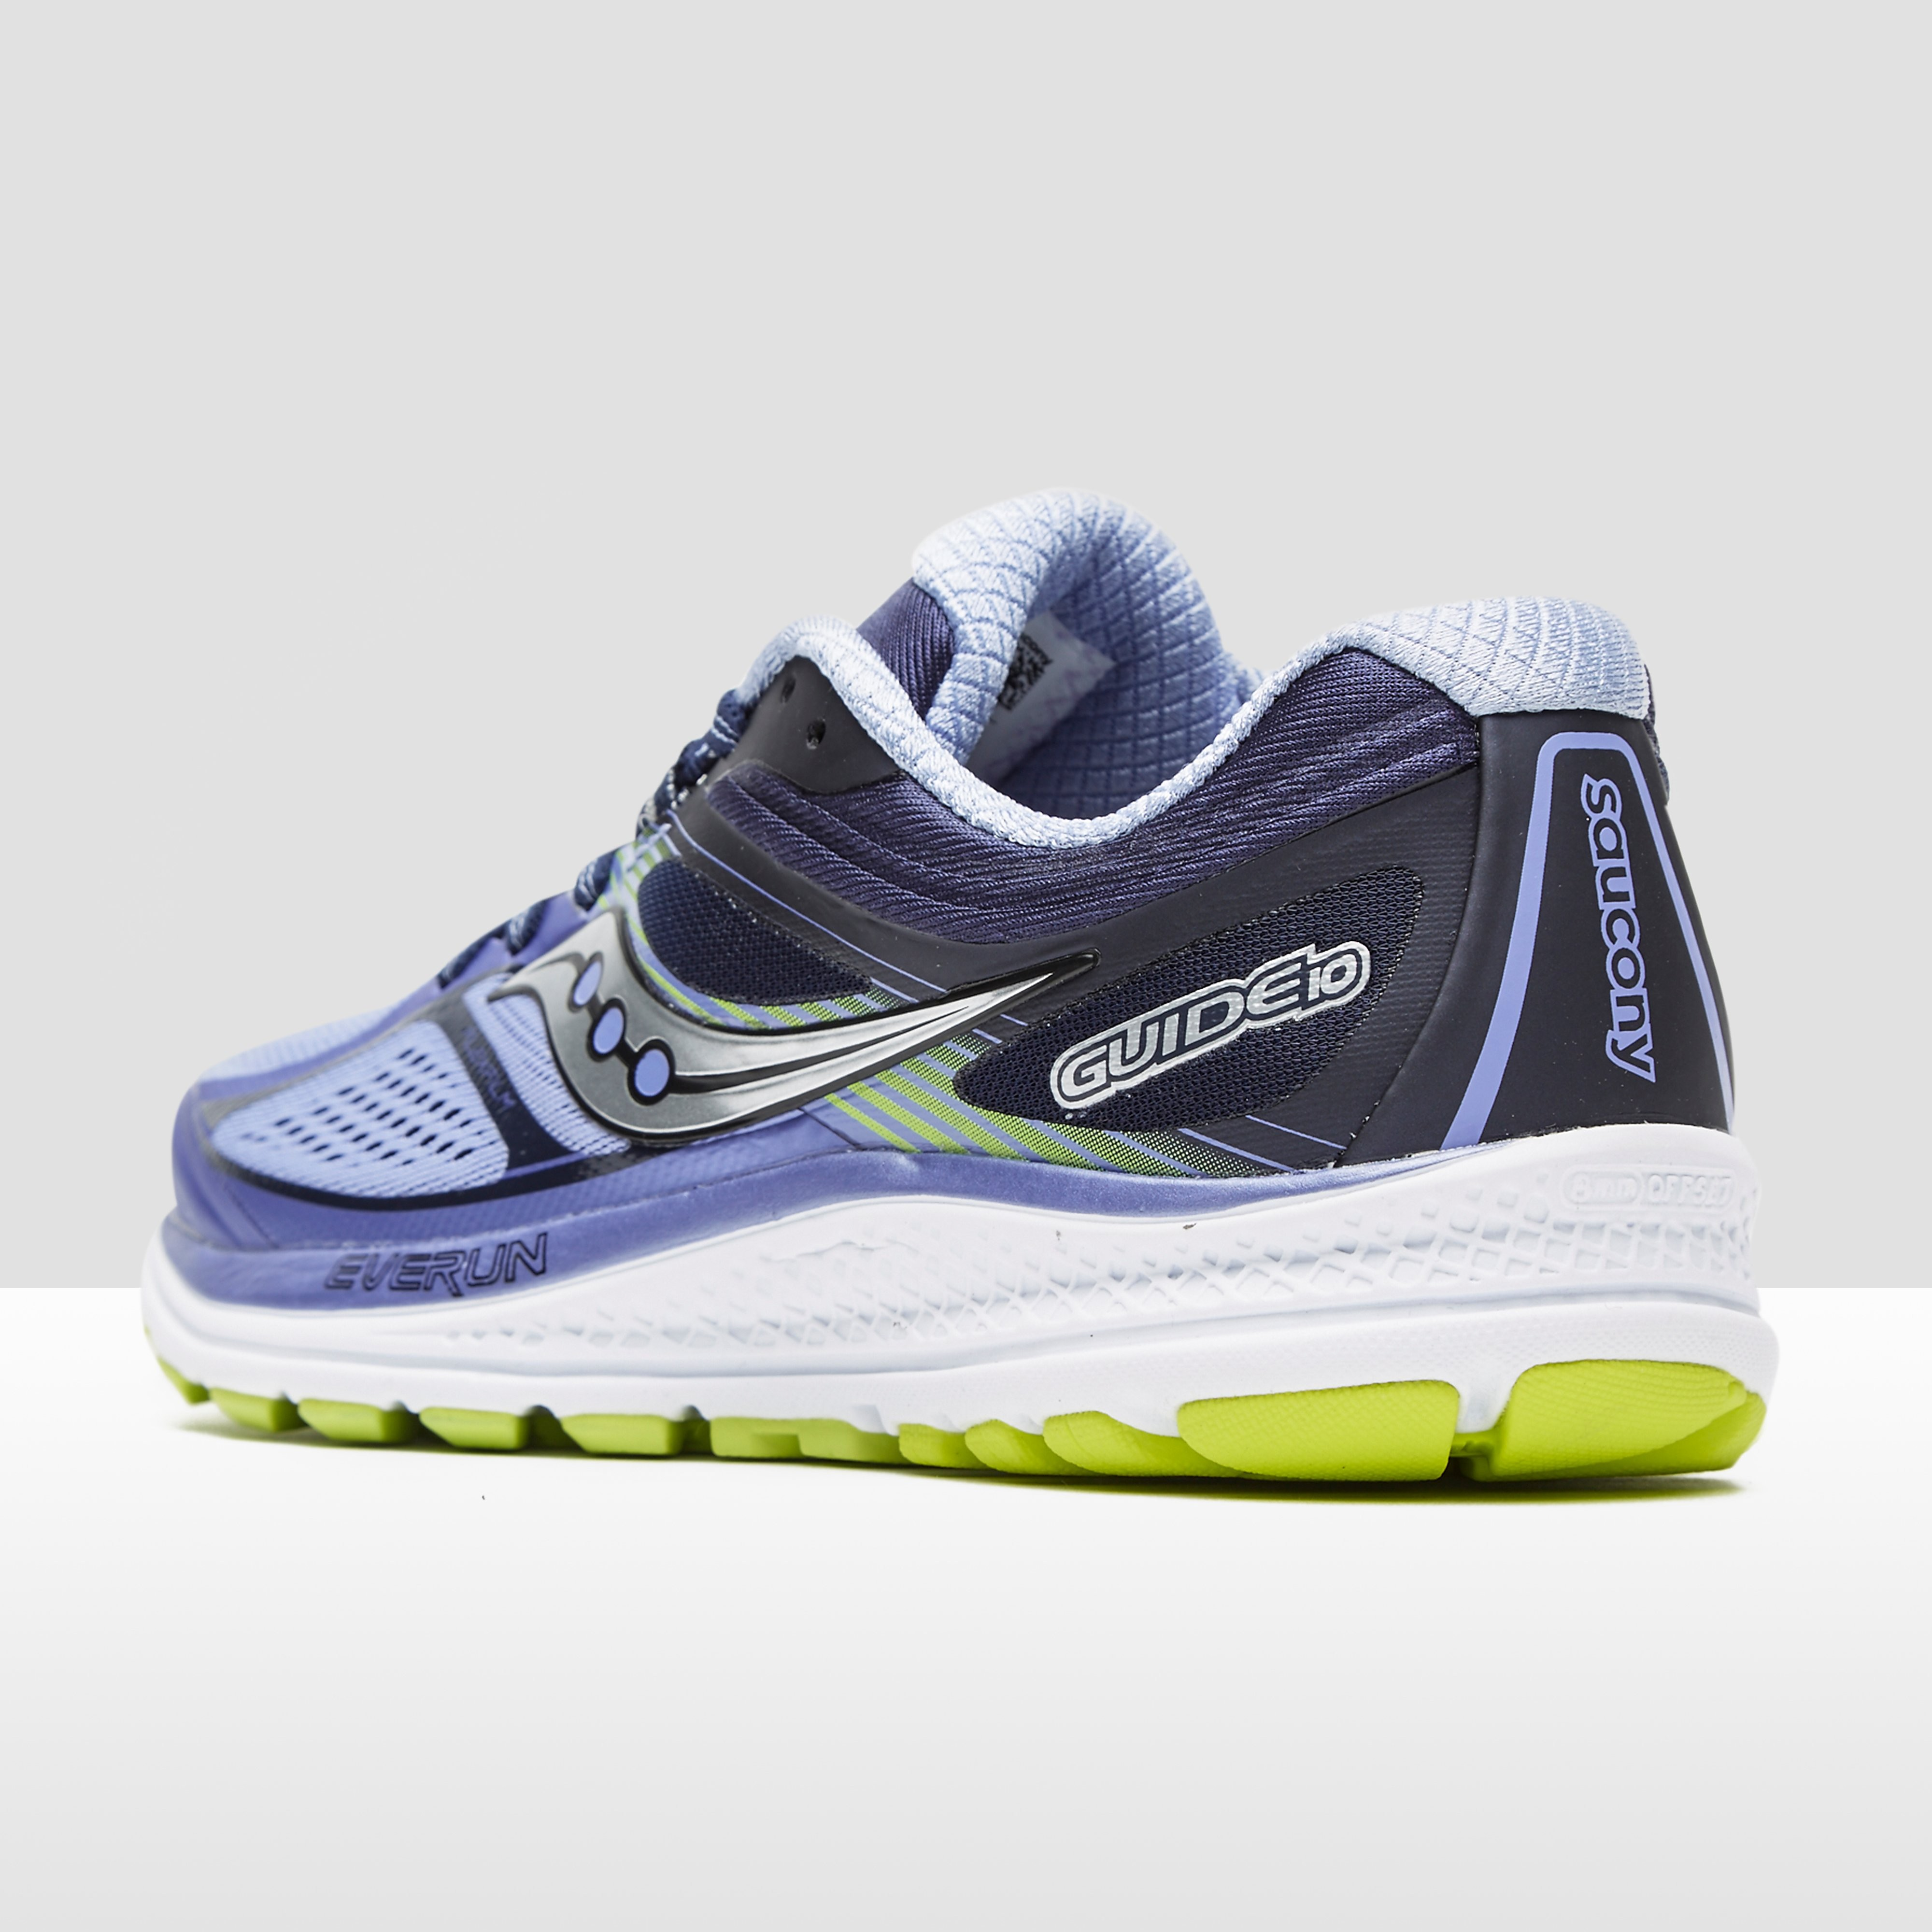 Saucony Guide 10 Women's Running Shoes